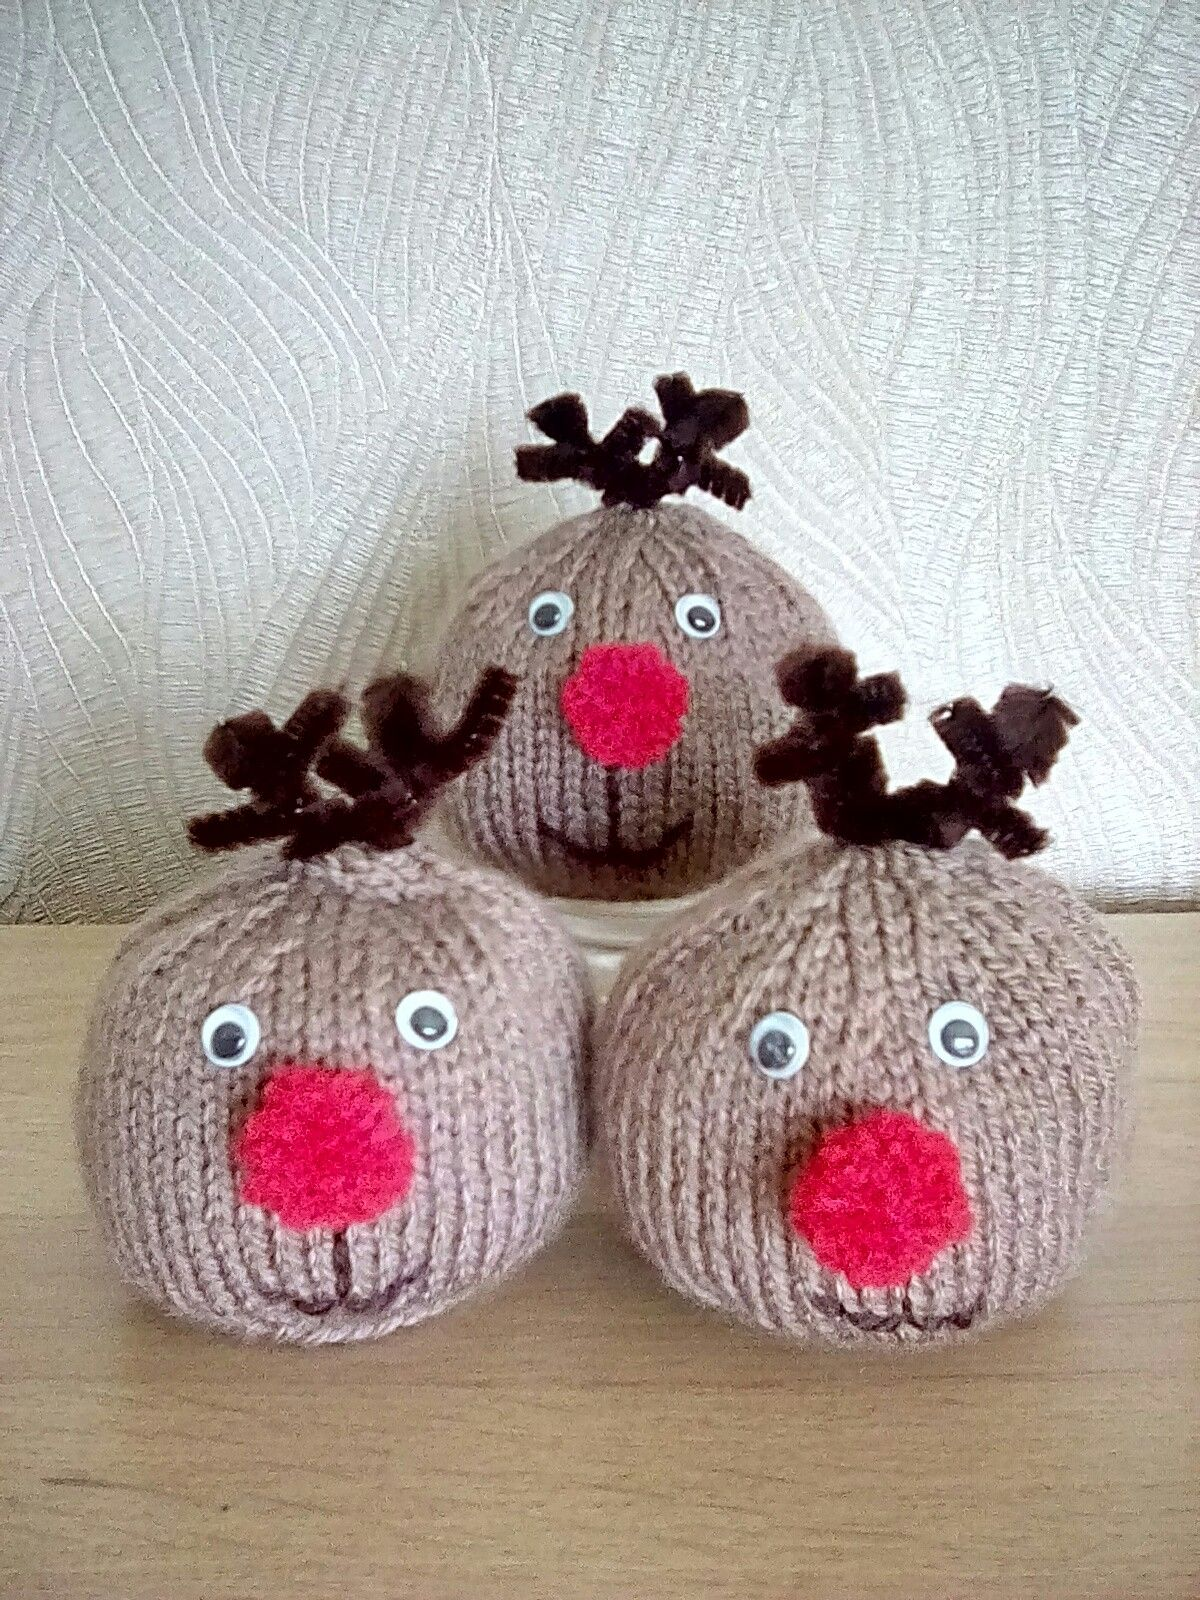 Chocolate Orange Covers Rudolph Knitted Christmas Decorations Christmas Knitting Patterns Christmas Crafts